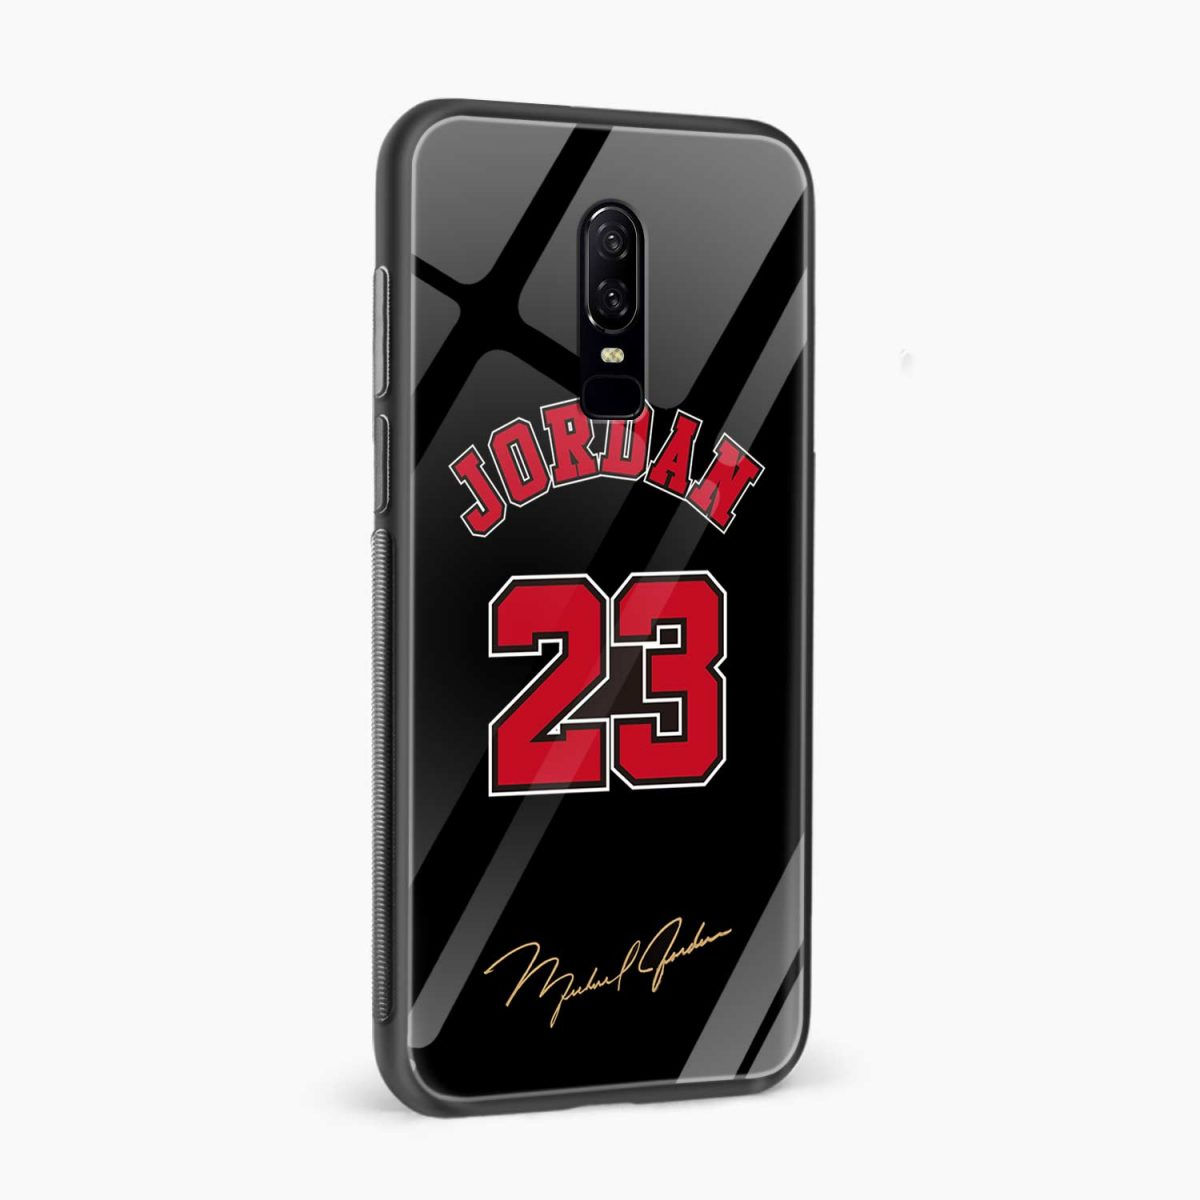 jordan side view oneplus 6 back cover